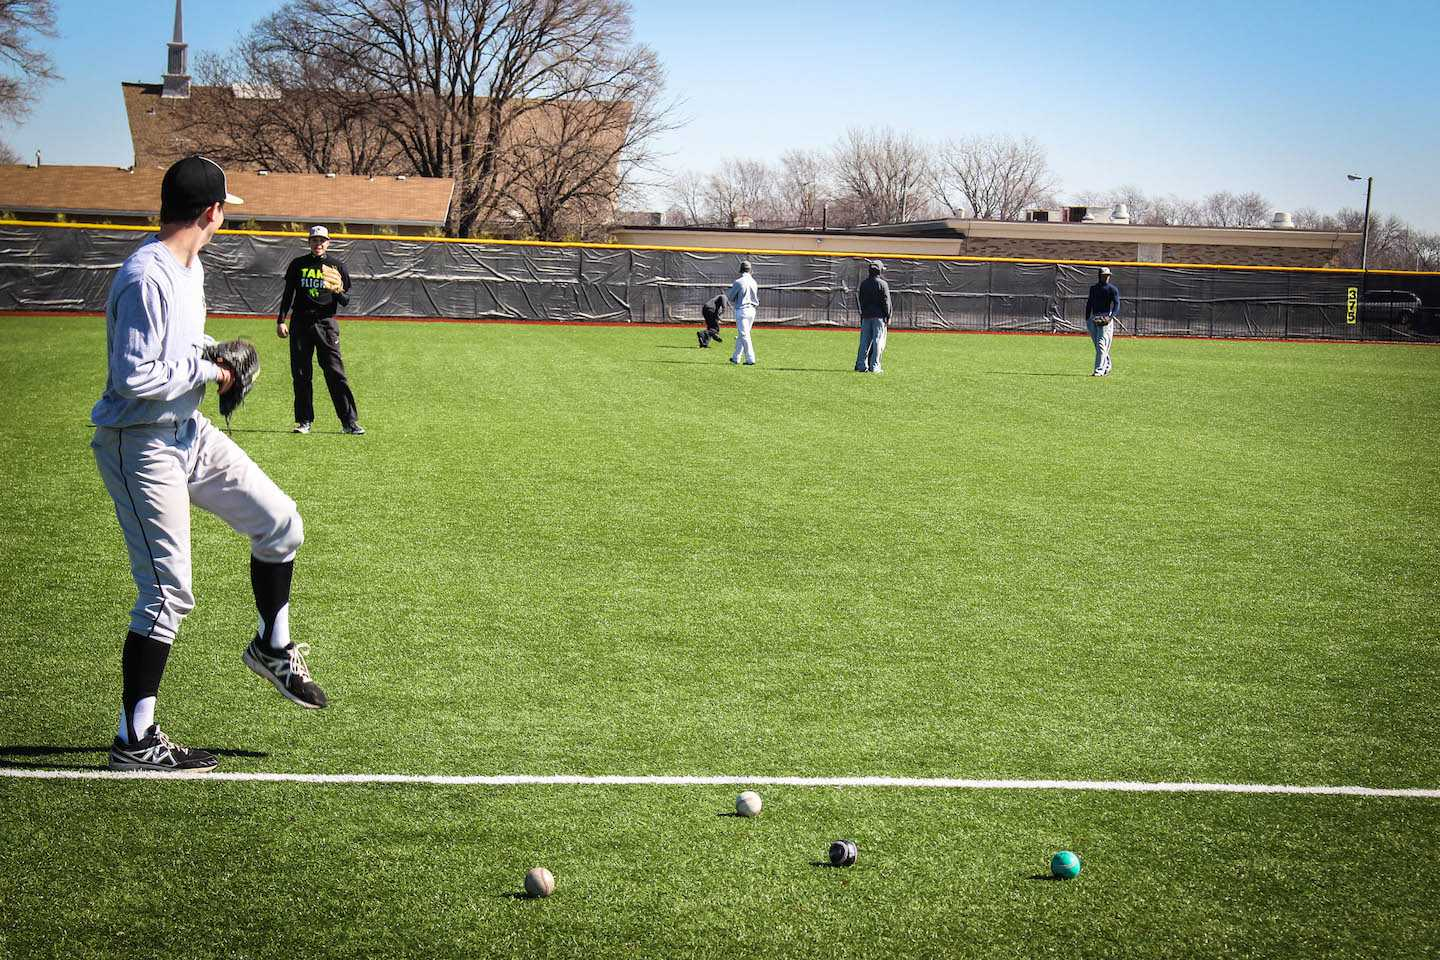 Baseball players warm up during practice.